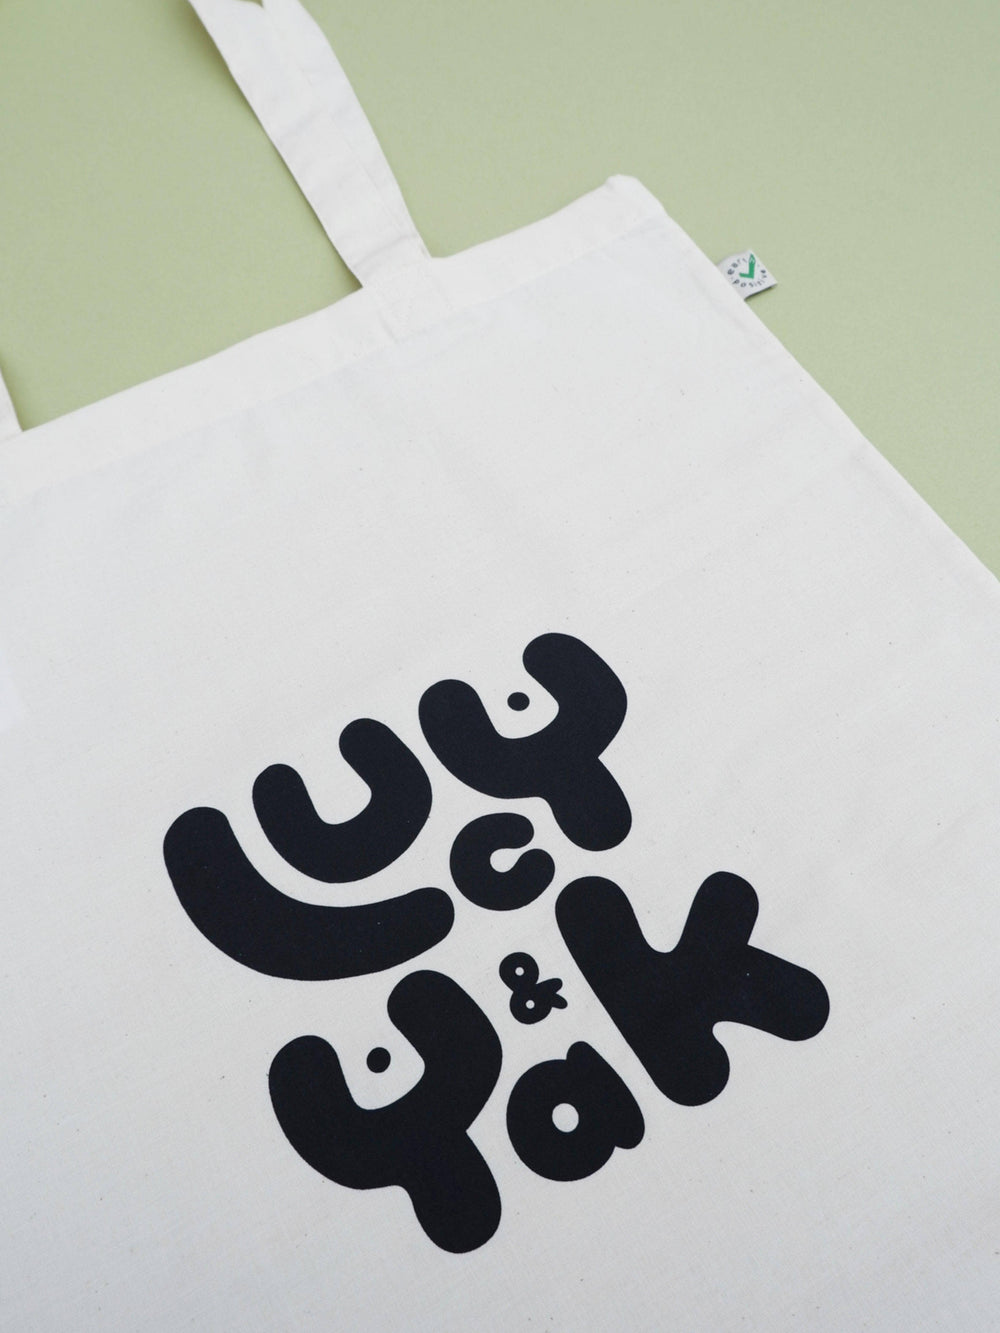 Lucy Yak Brighton Screen Printed Lucy & Yak Logo Tote Bag on Organic Cotton